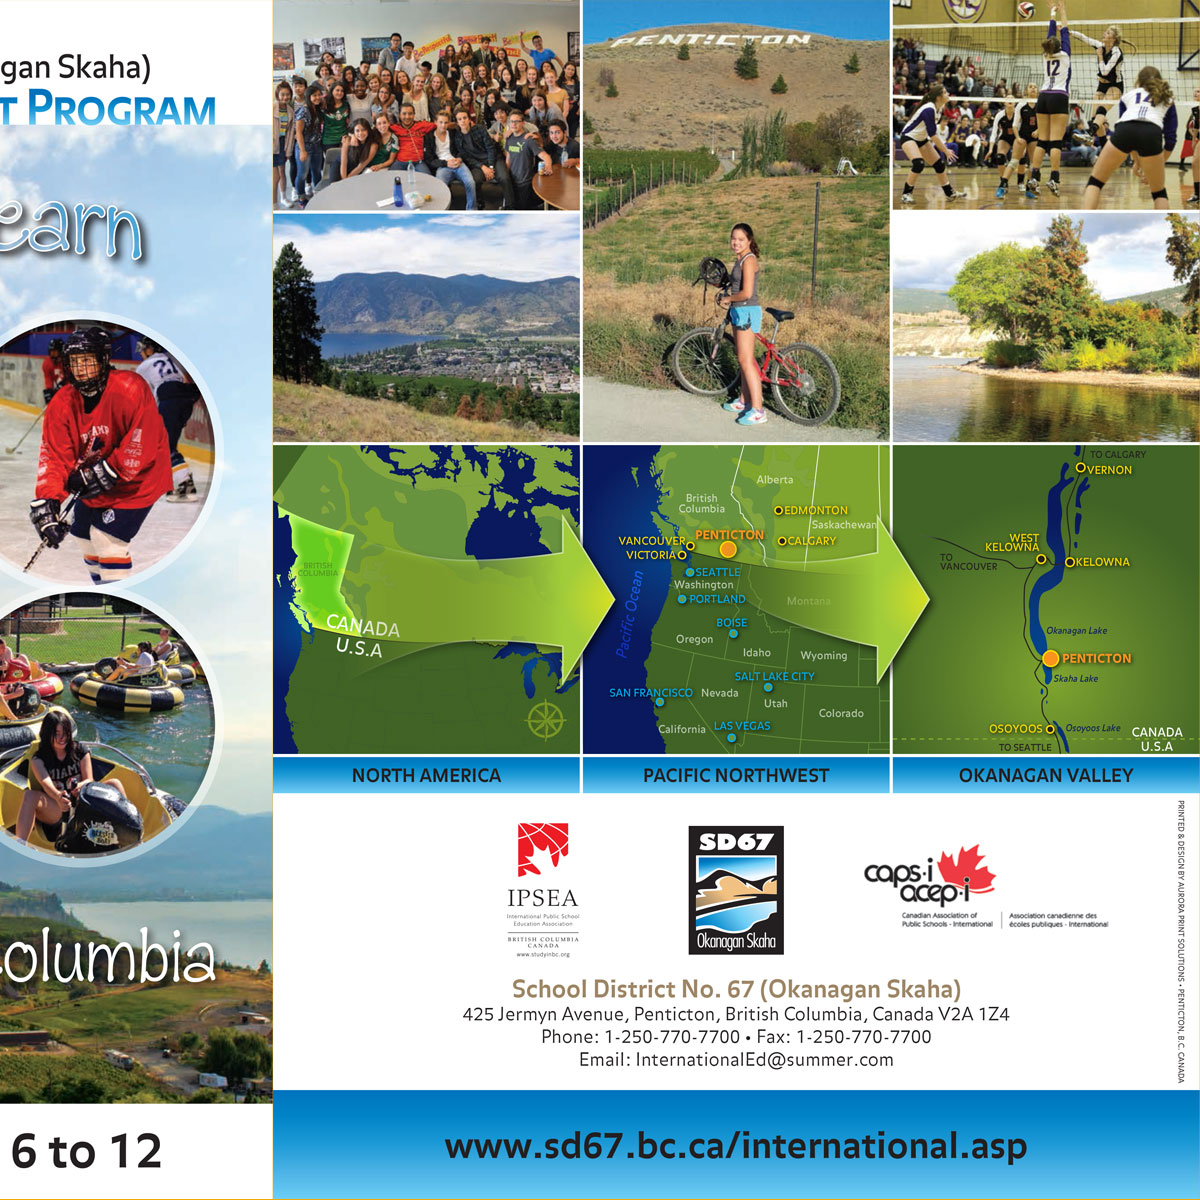 School District 67 International Students brochure 4